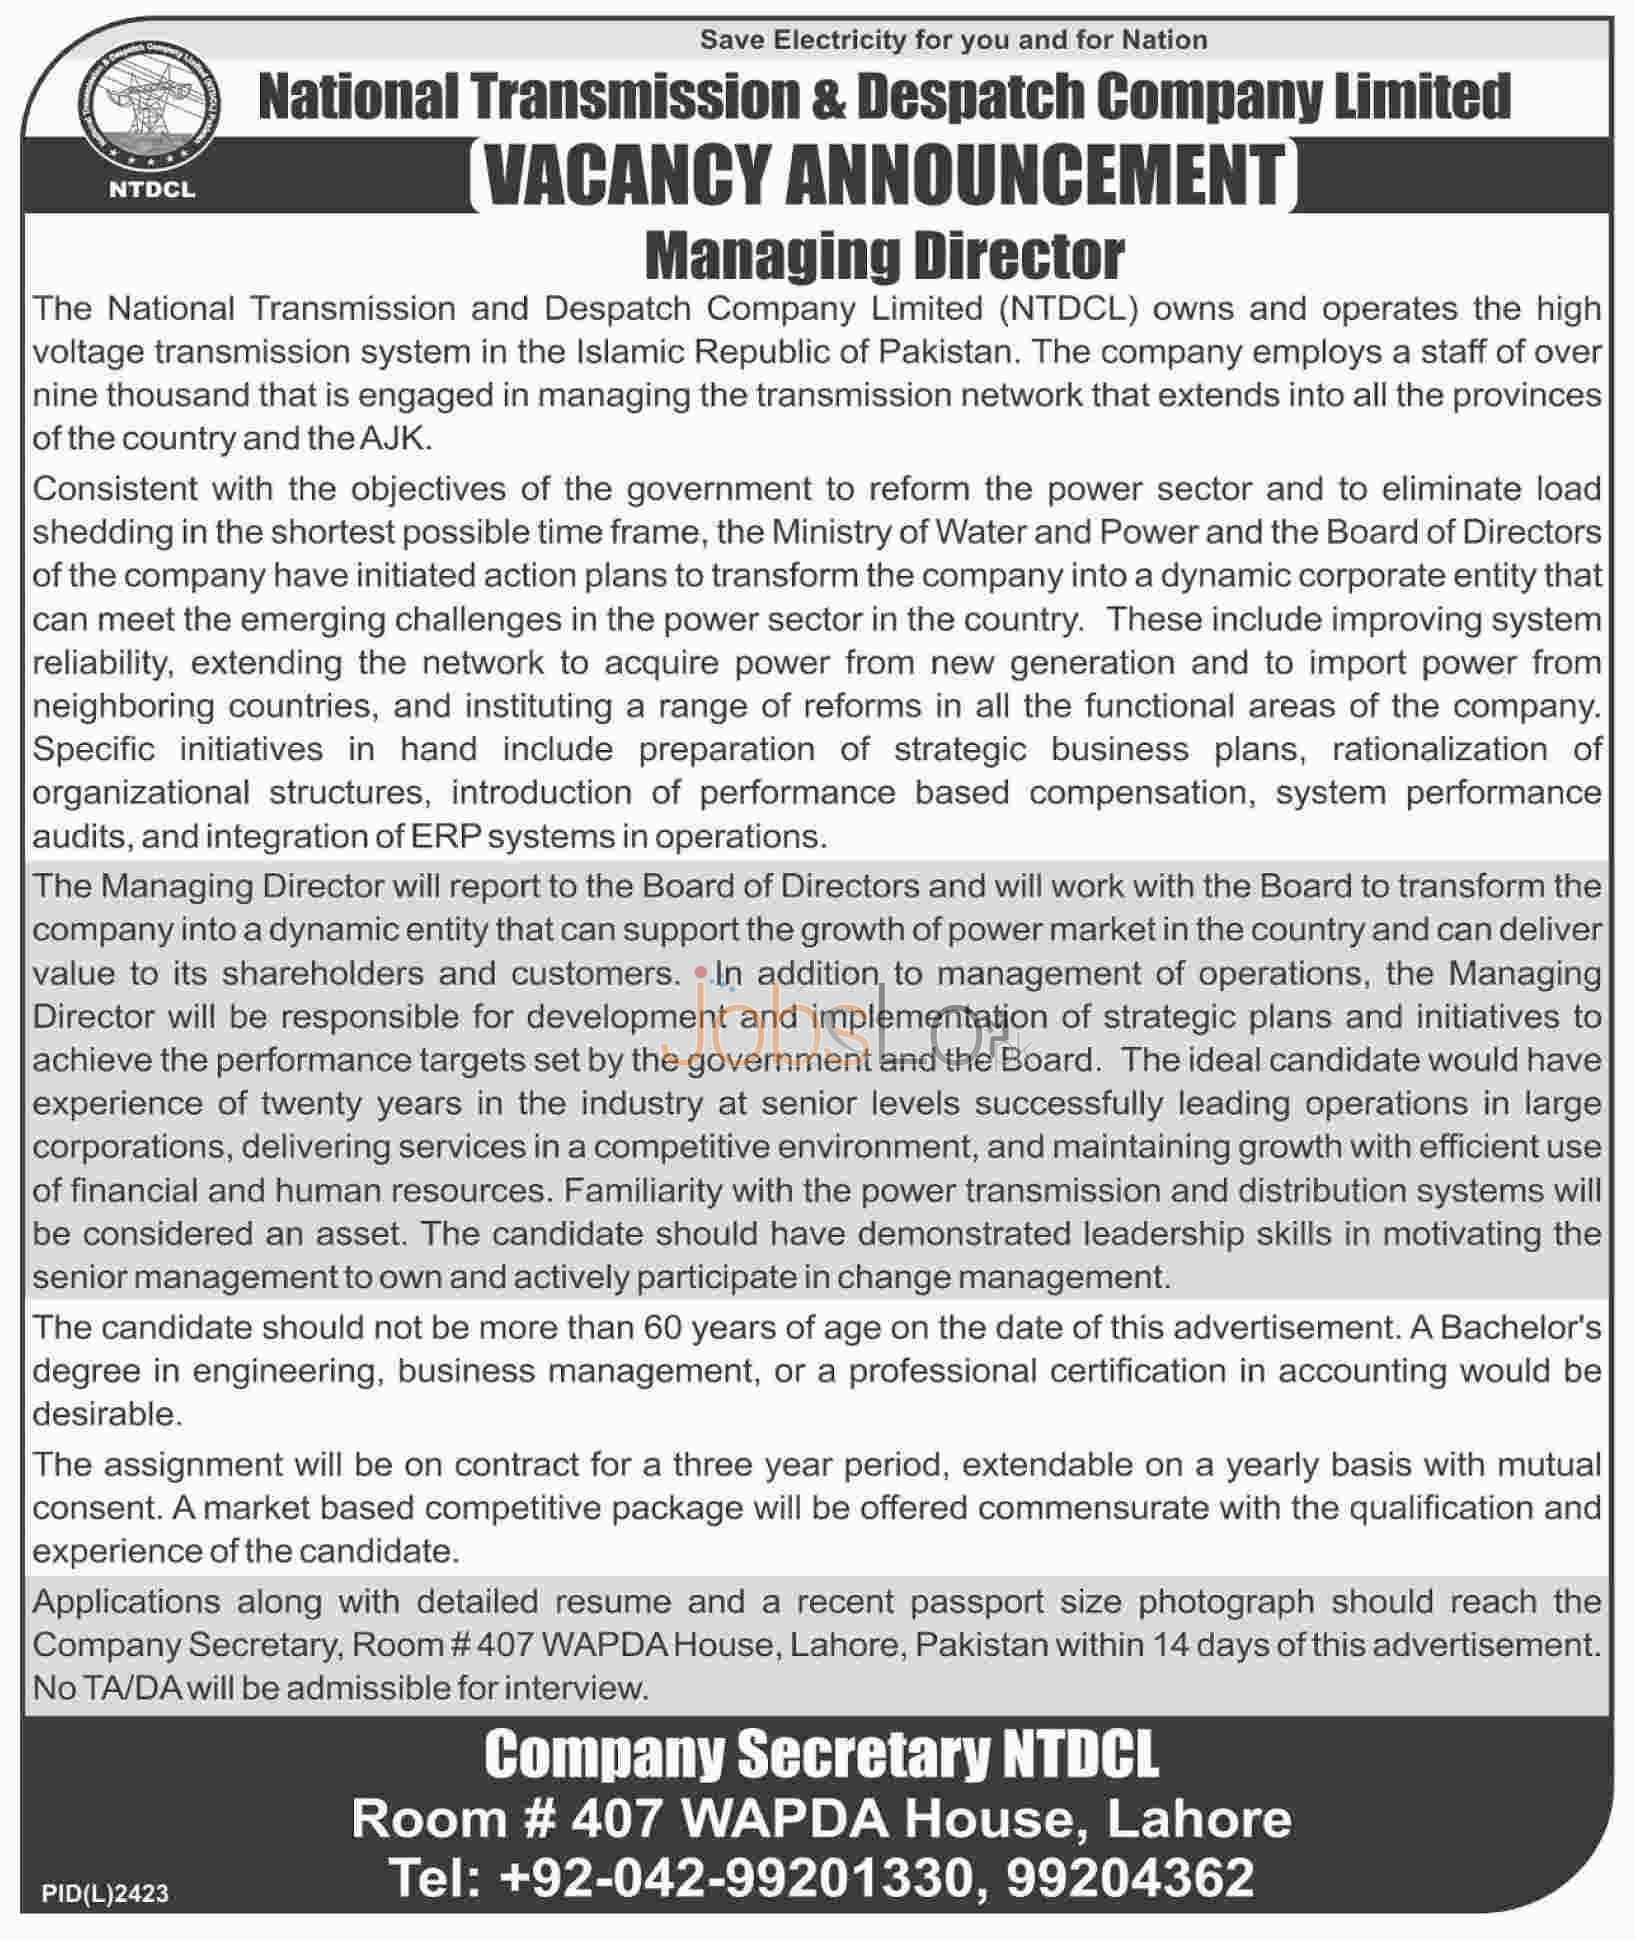 Job Vacancies for Managing Director in NTDCL February 2016 in Lahore